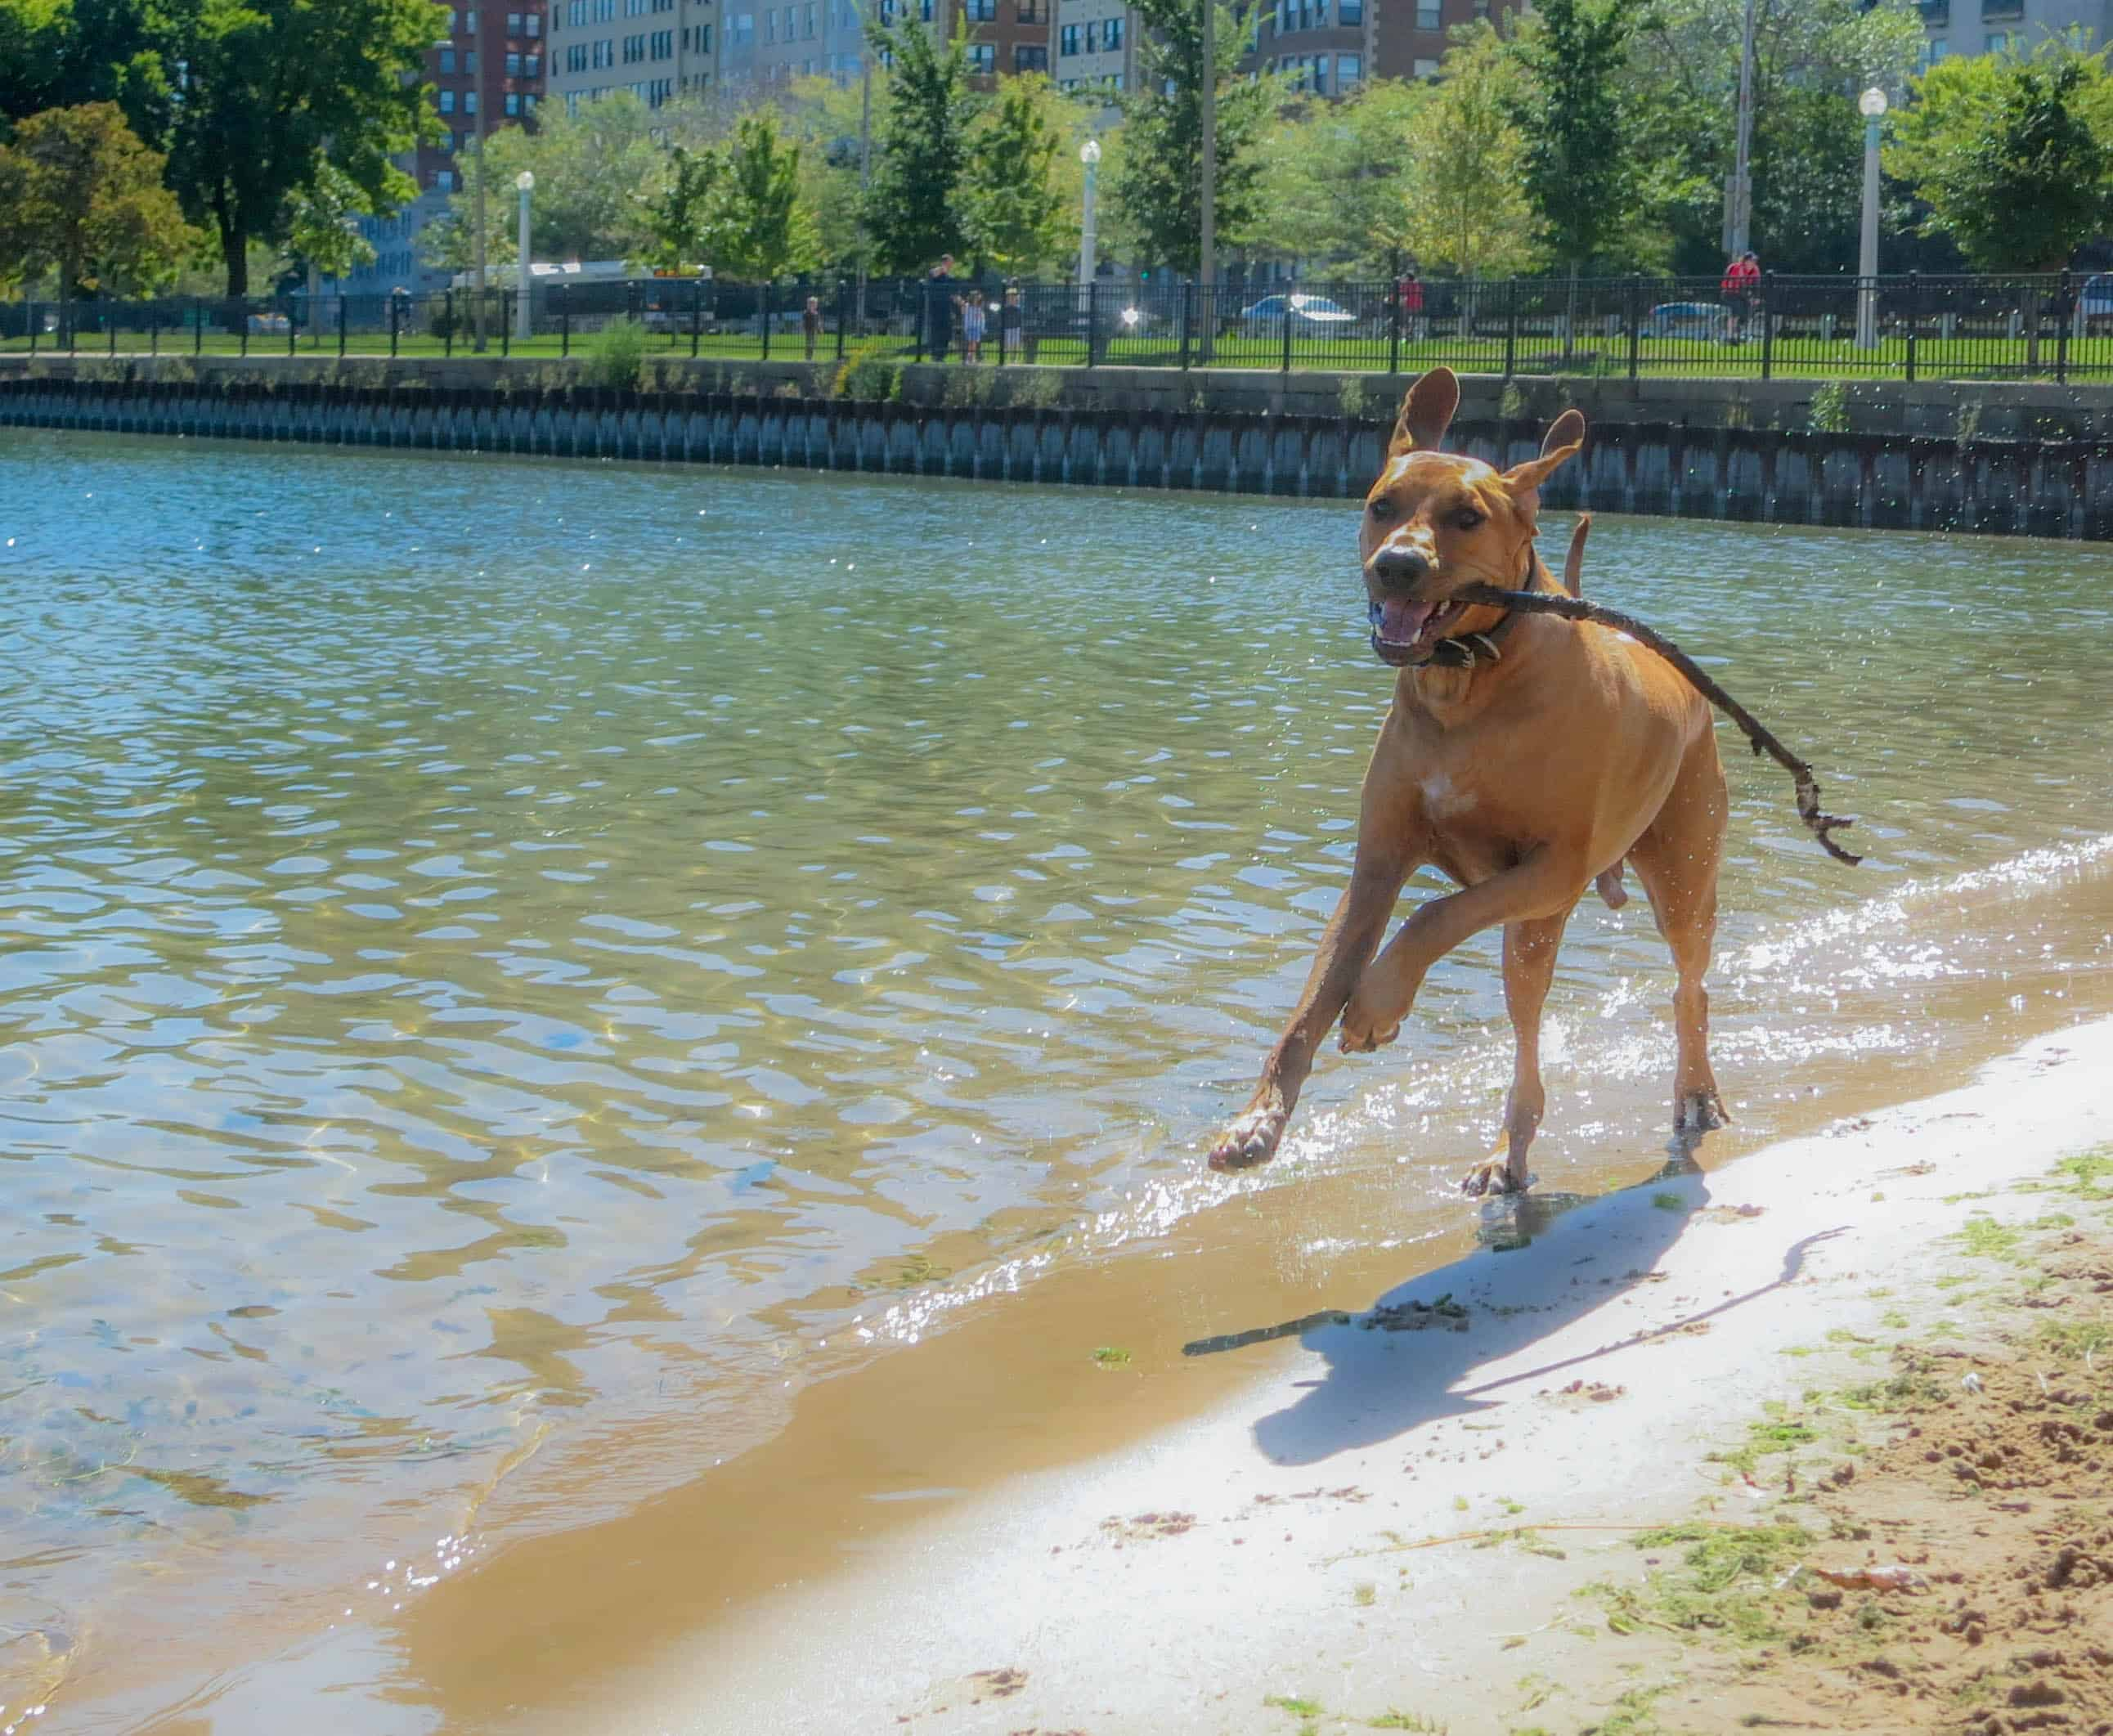 Rhodesian Ridgeback, adventure, marking our territory, dogs, petcentric